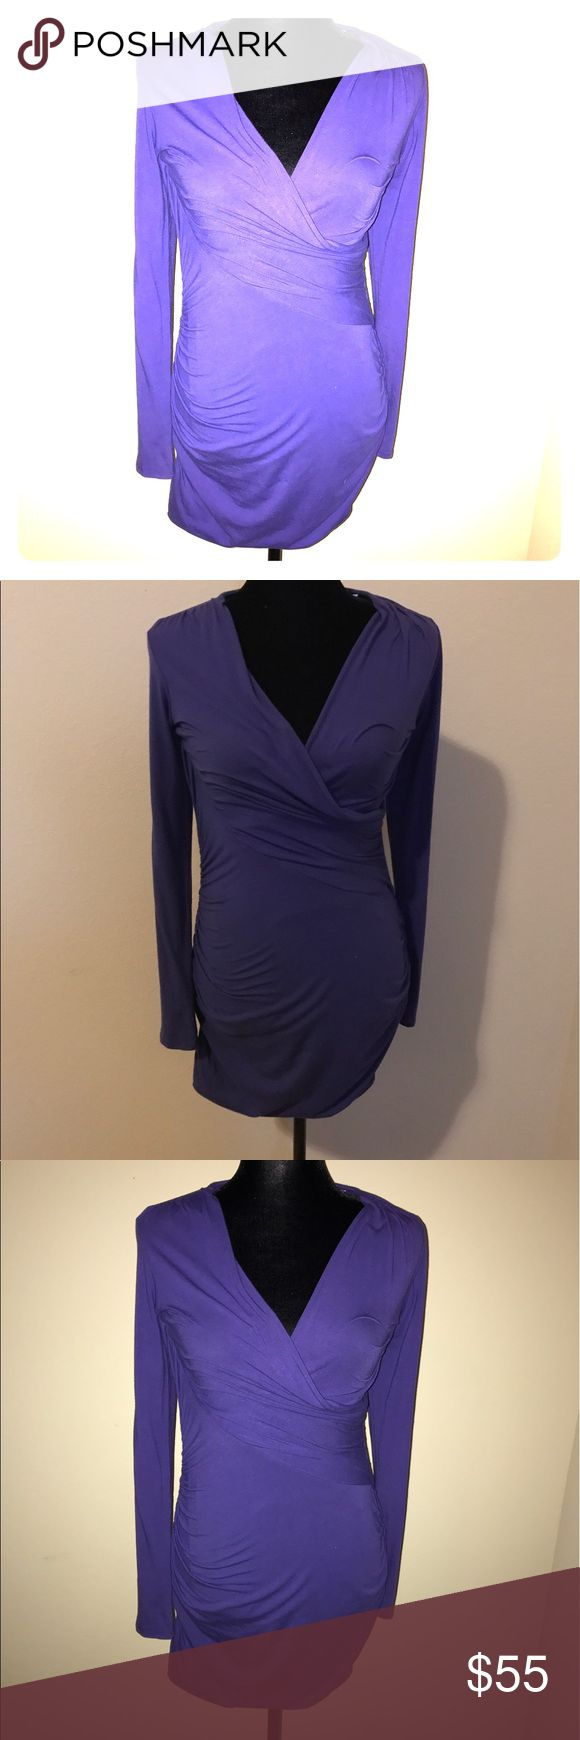 Ella Moss Purple Body Con Midi Dress Medium Great dress to have as a wardrobe staple. Curve hugging- great for a sexy night out. Ella Moss Dresses